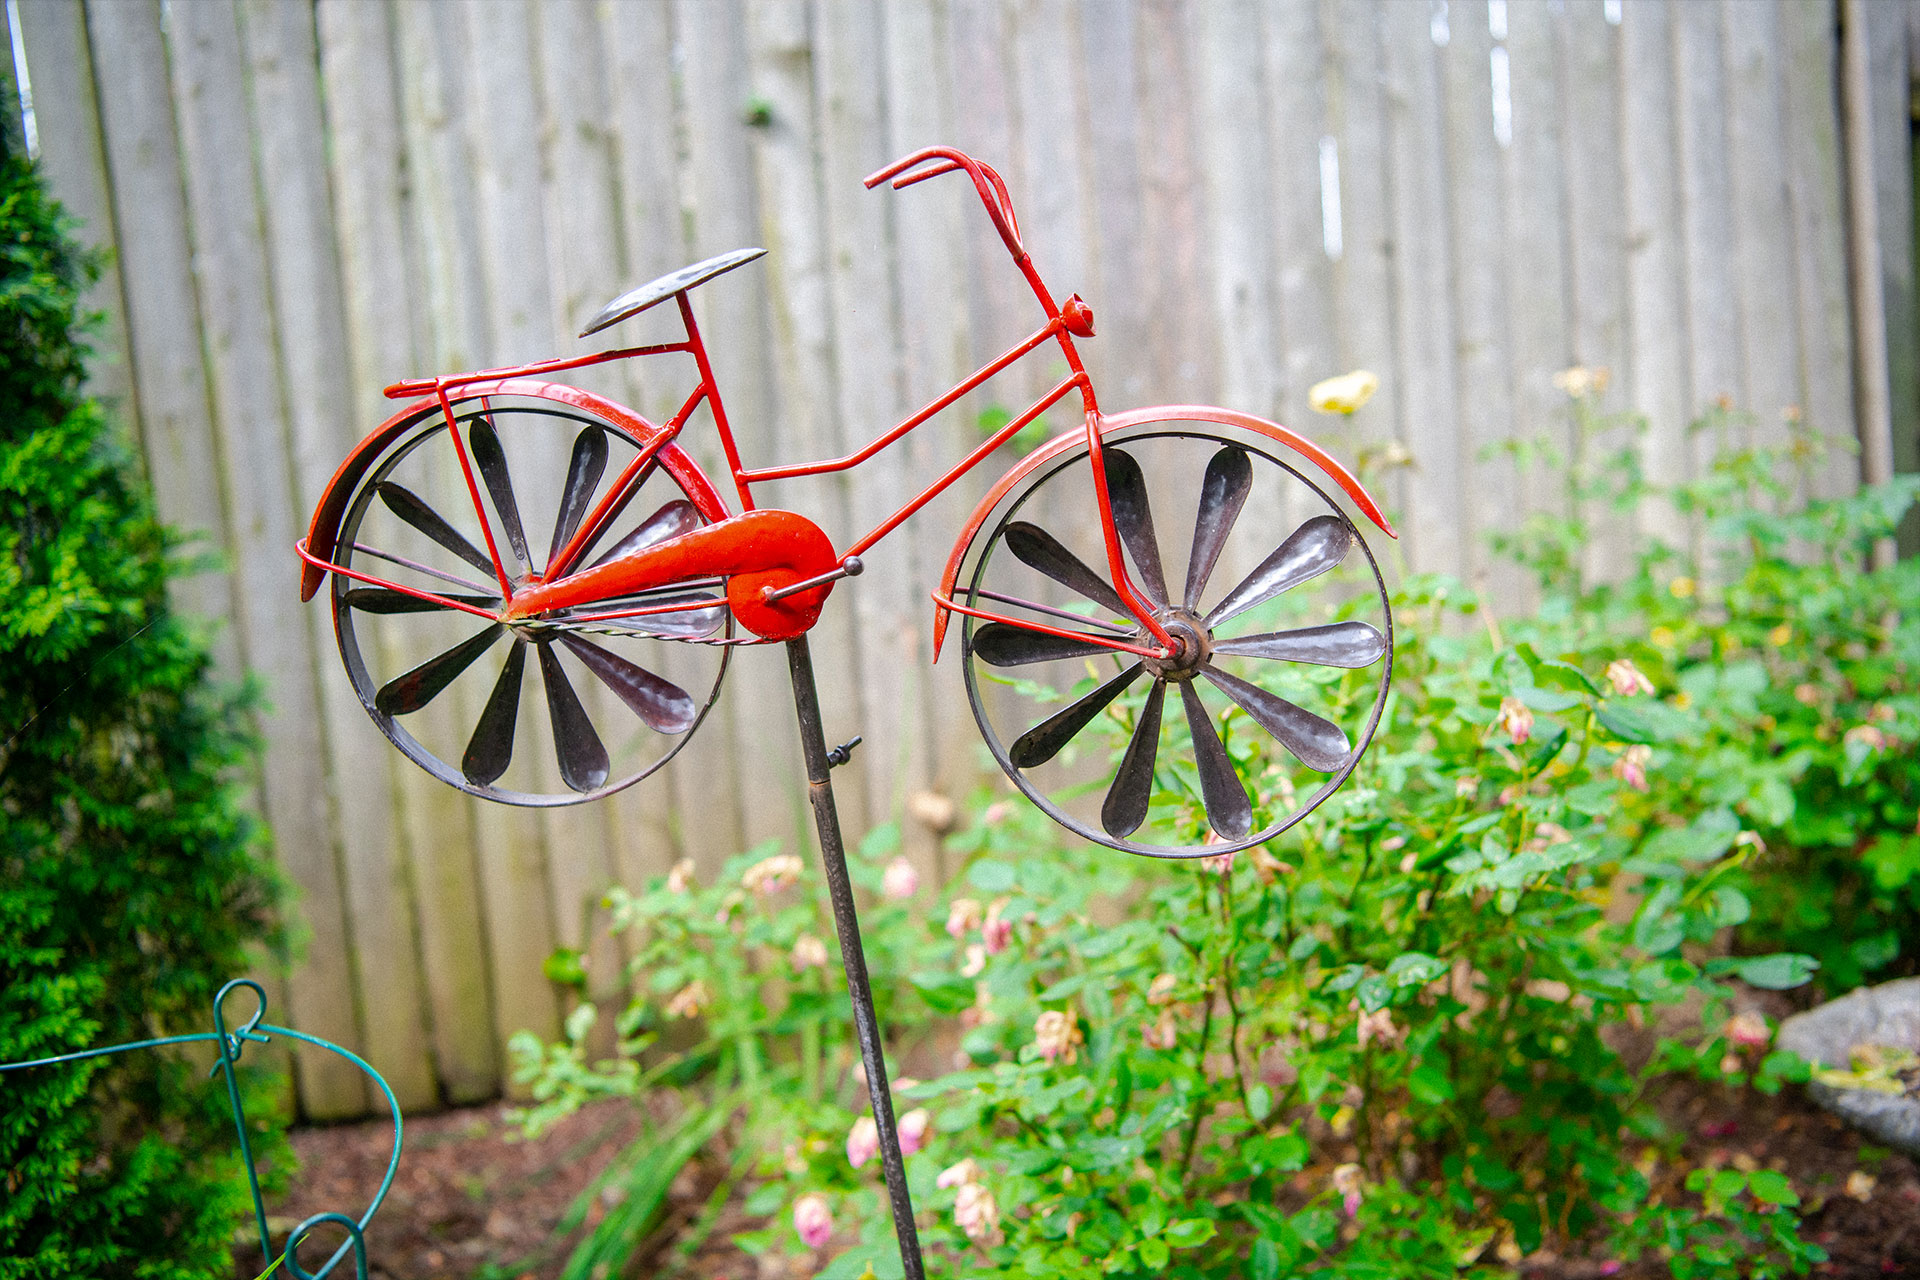 A red bicycle garden ornament. The wheels are wind spinners.